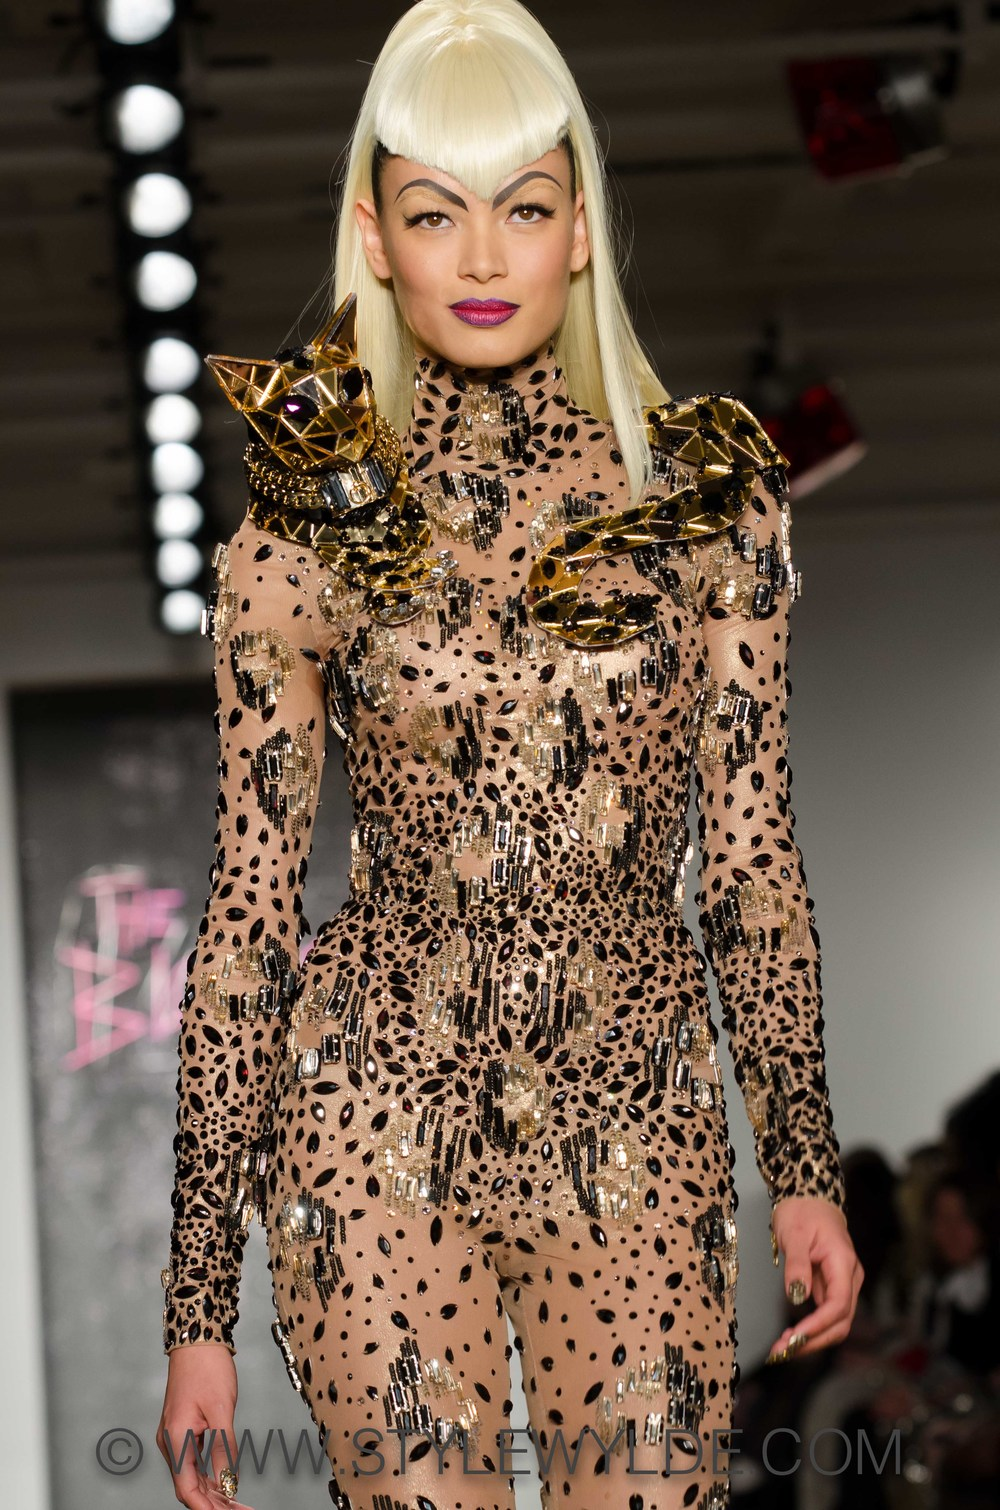 Stylewylde_Blonds_FW2014_FOH_CA (12 of 16).jpg